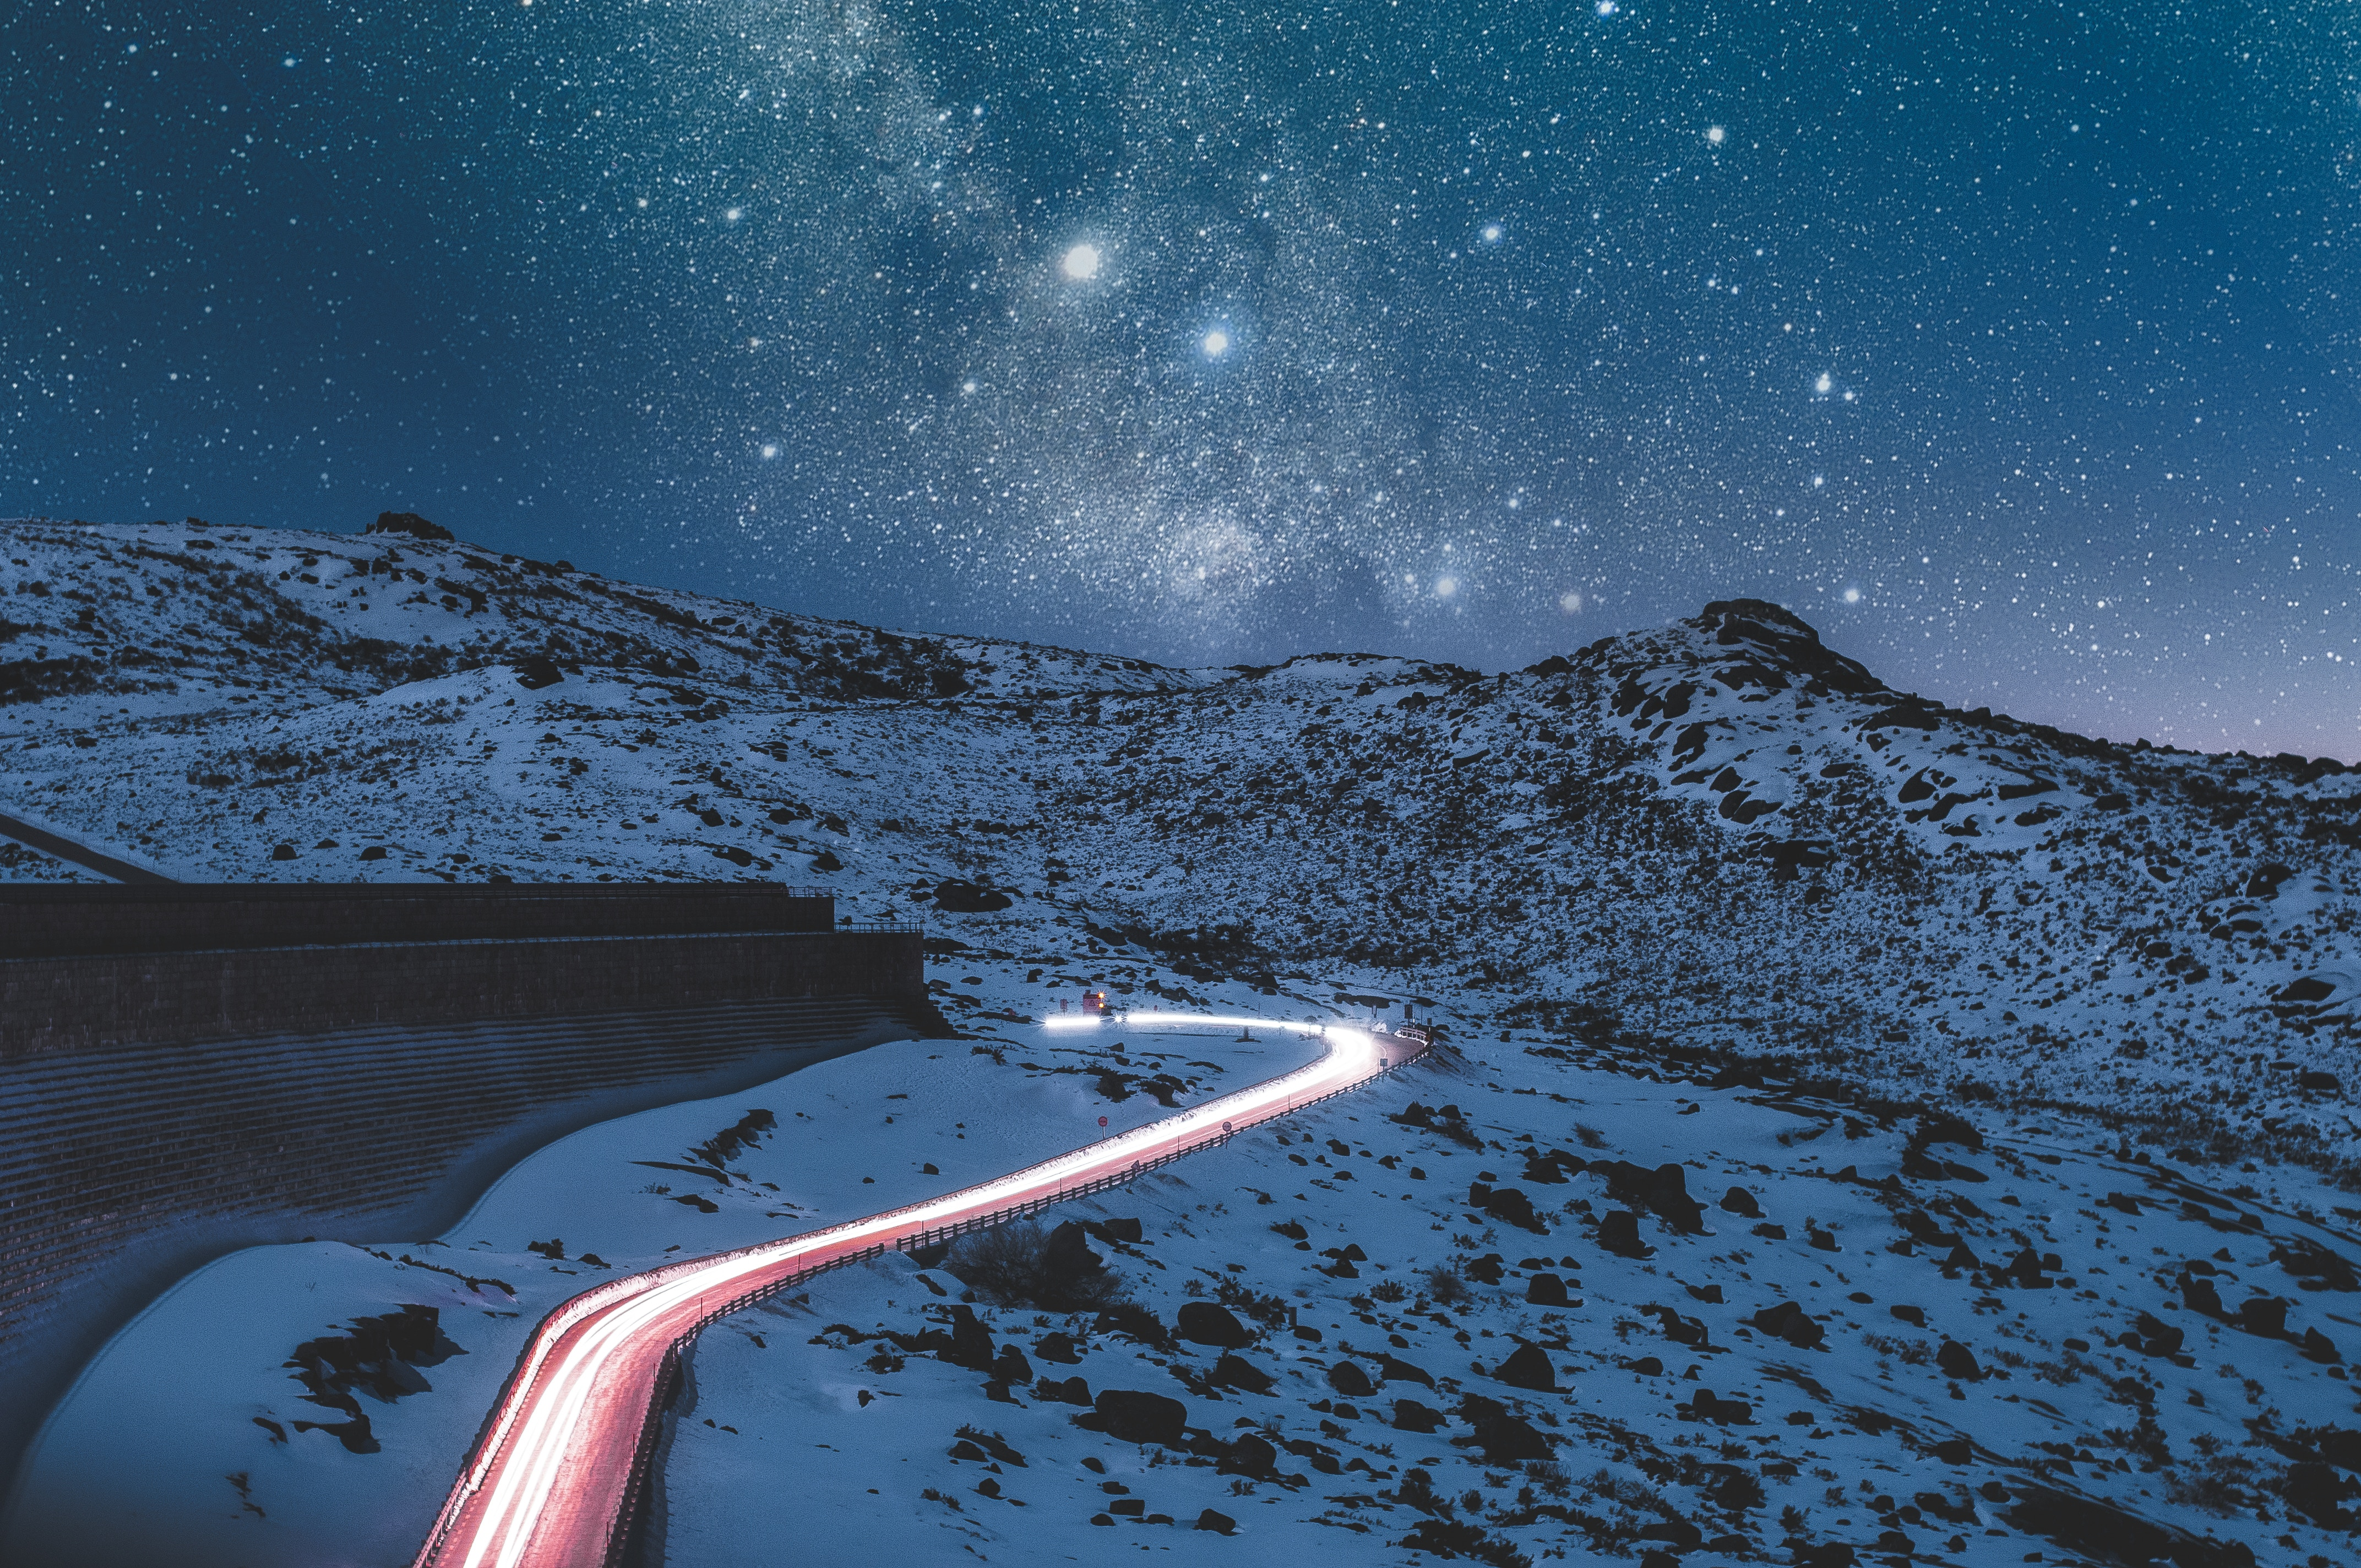 Photo of a light trail of a road going into the snowy mountains at night with a starry sky above